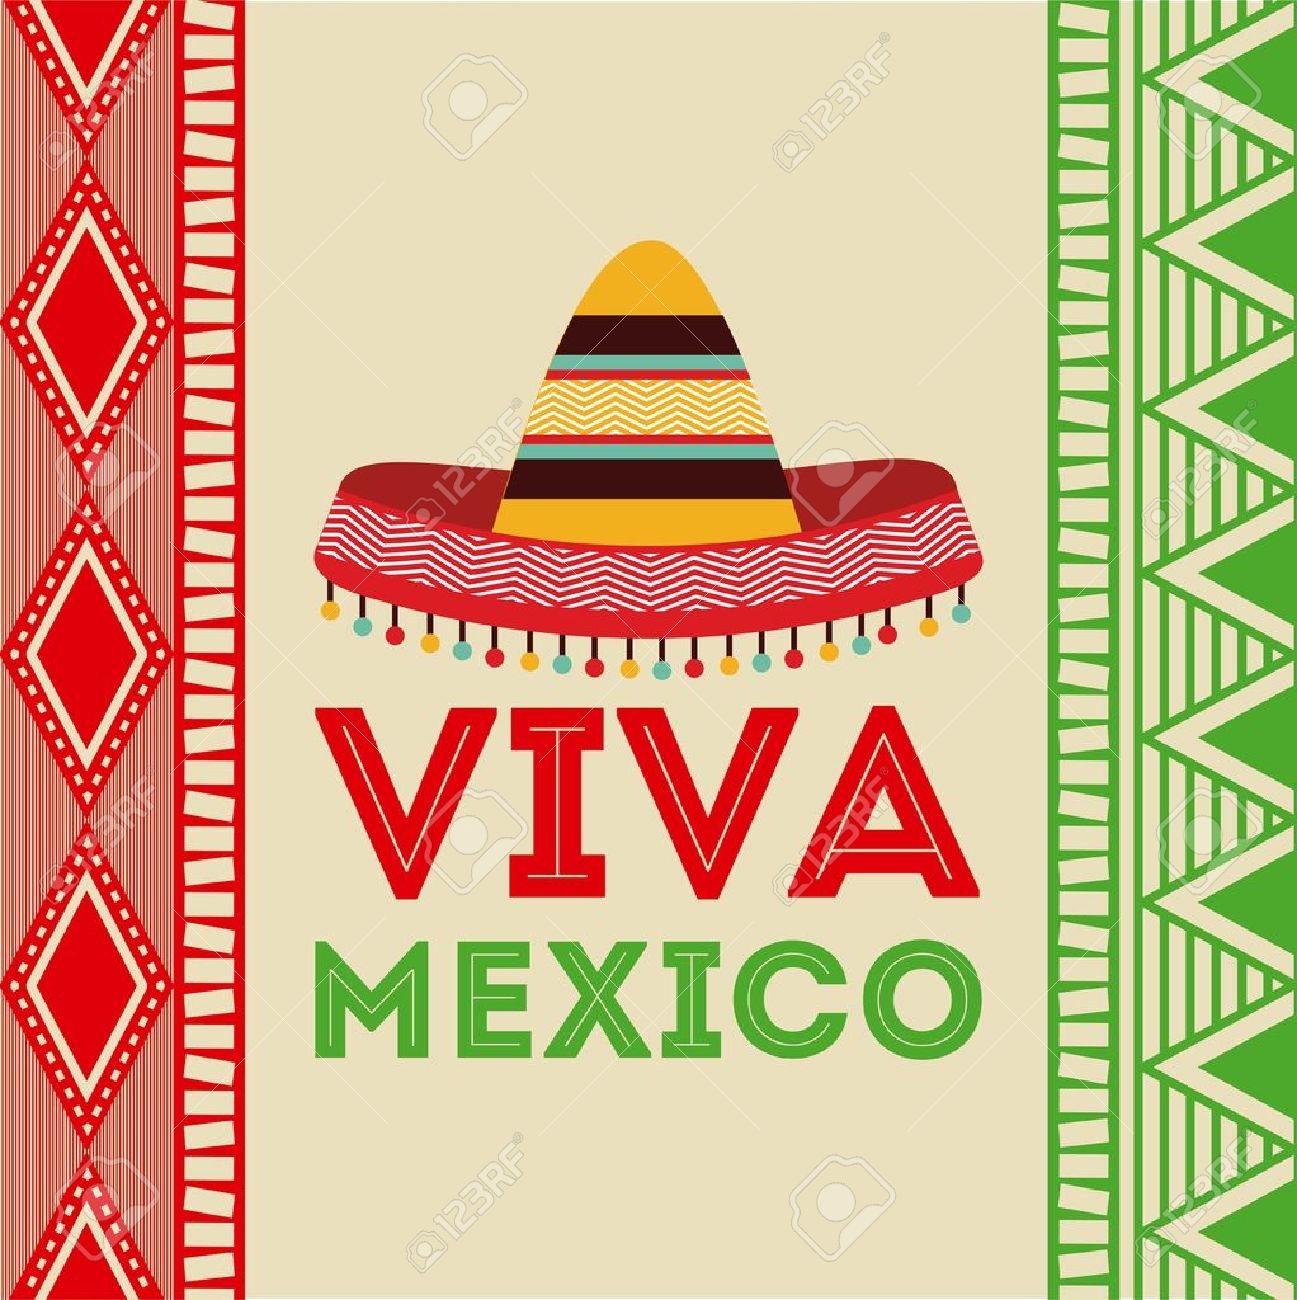 Mexico Design Over Colorful Background Vector Illustration 1297x1300